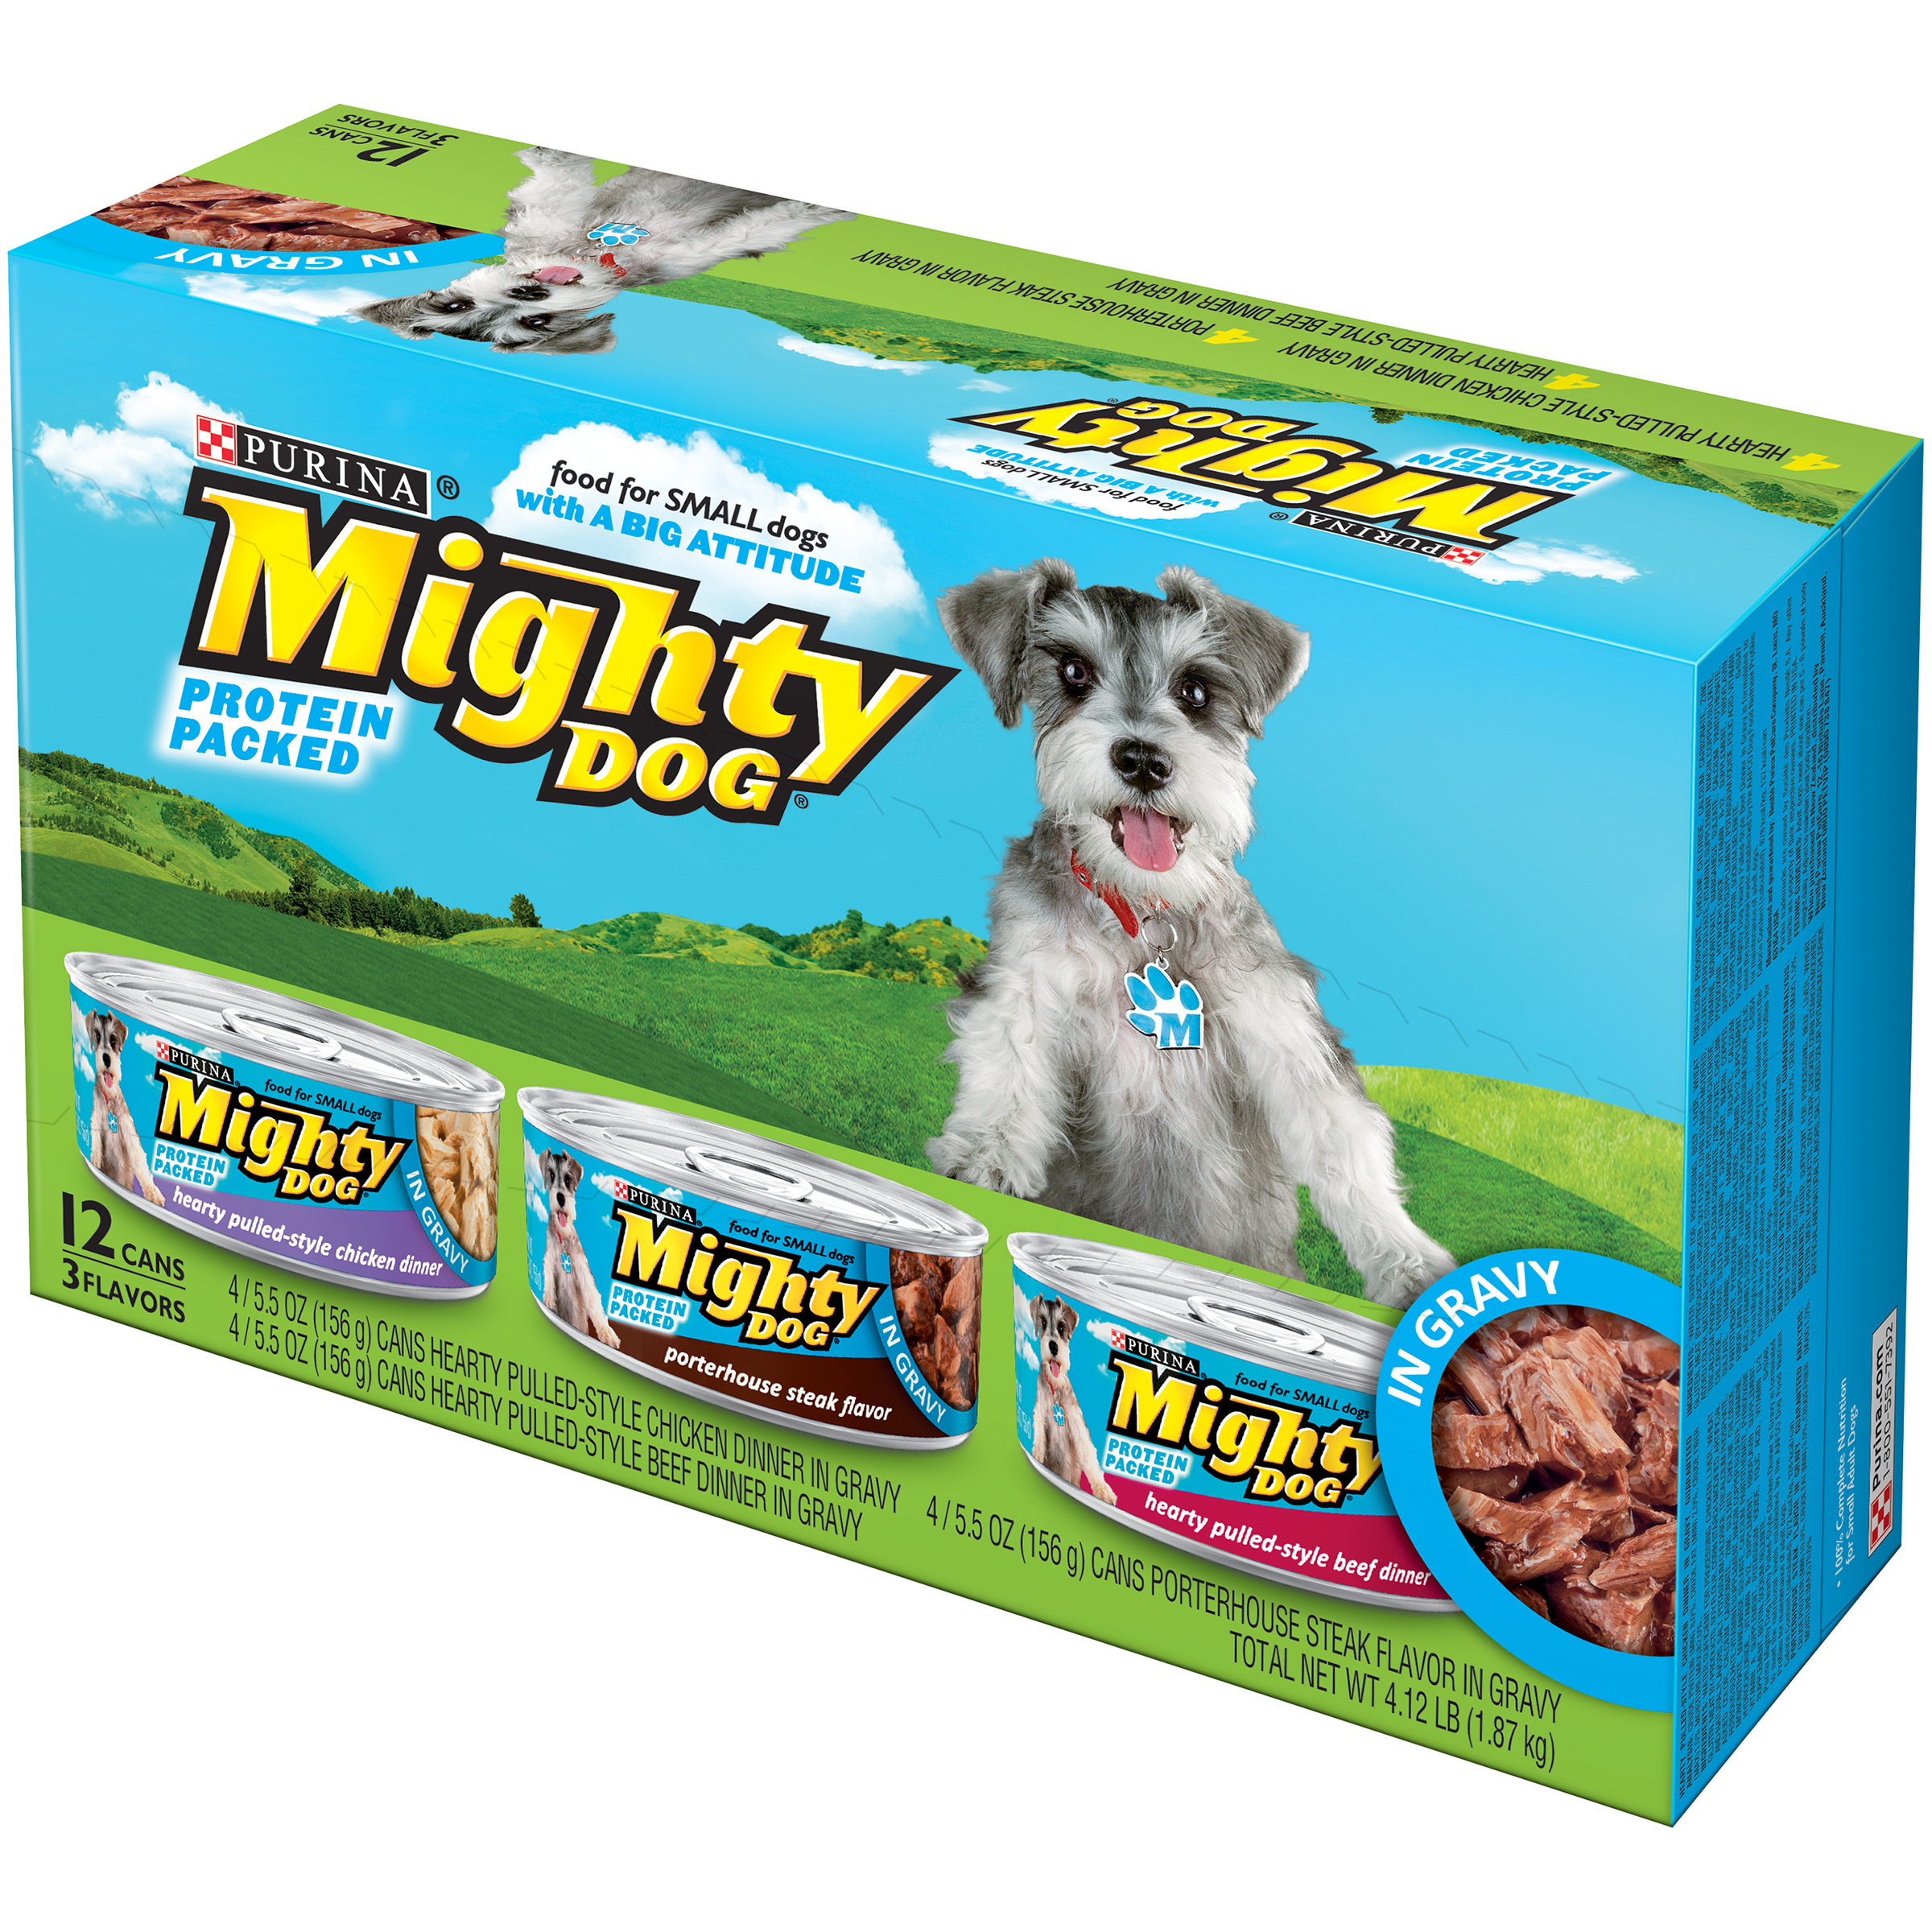 Purina Mighty Dog Savory Steak Flavor/Rotisserie Chicken Flavor/Chicken, Egg & Bacon Country Platter Dog Food Variety Pack 12-5.5 oz. Cans